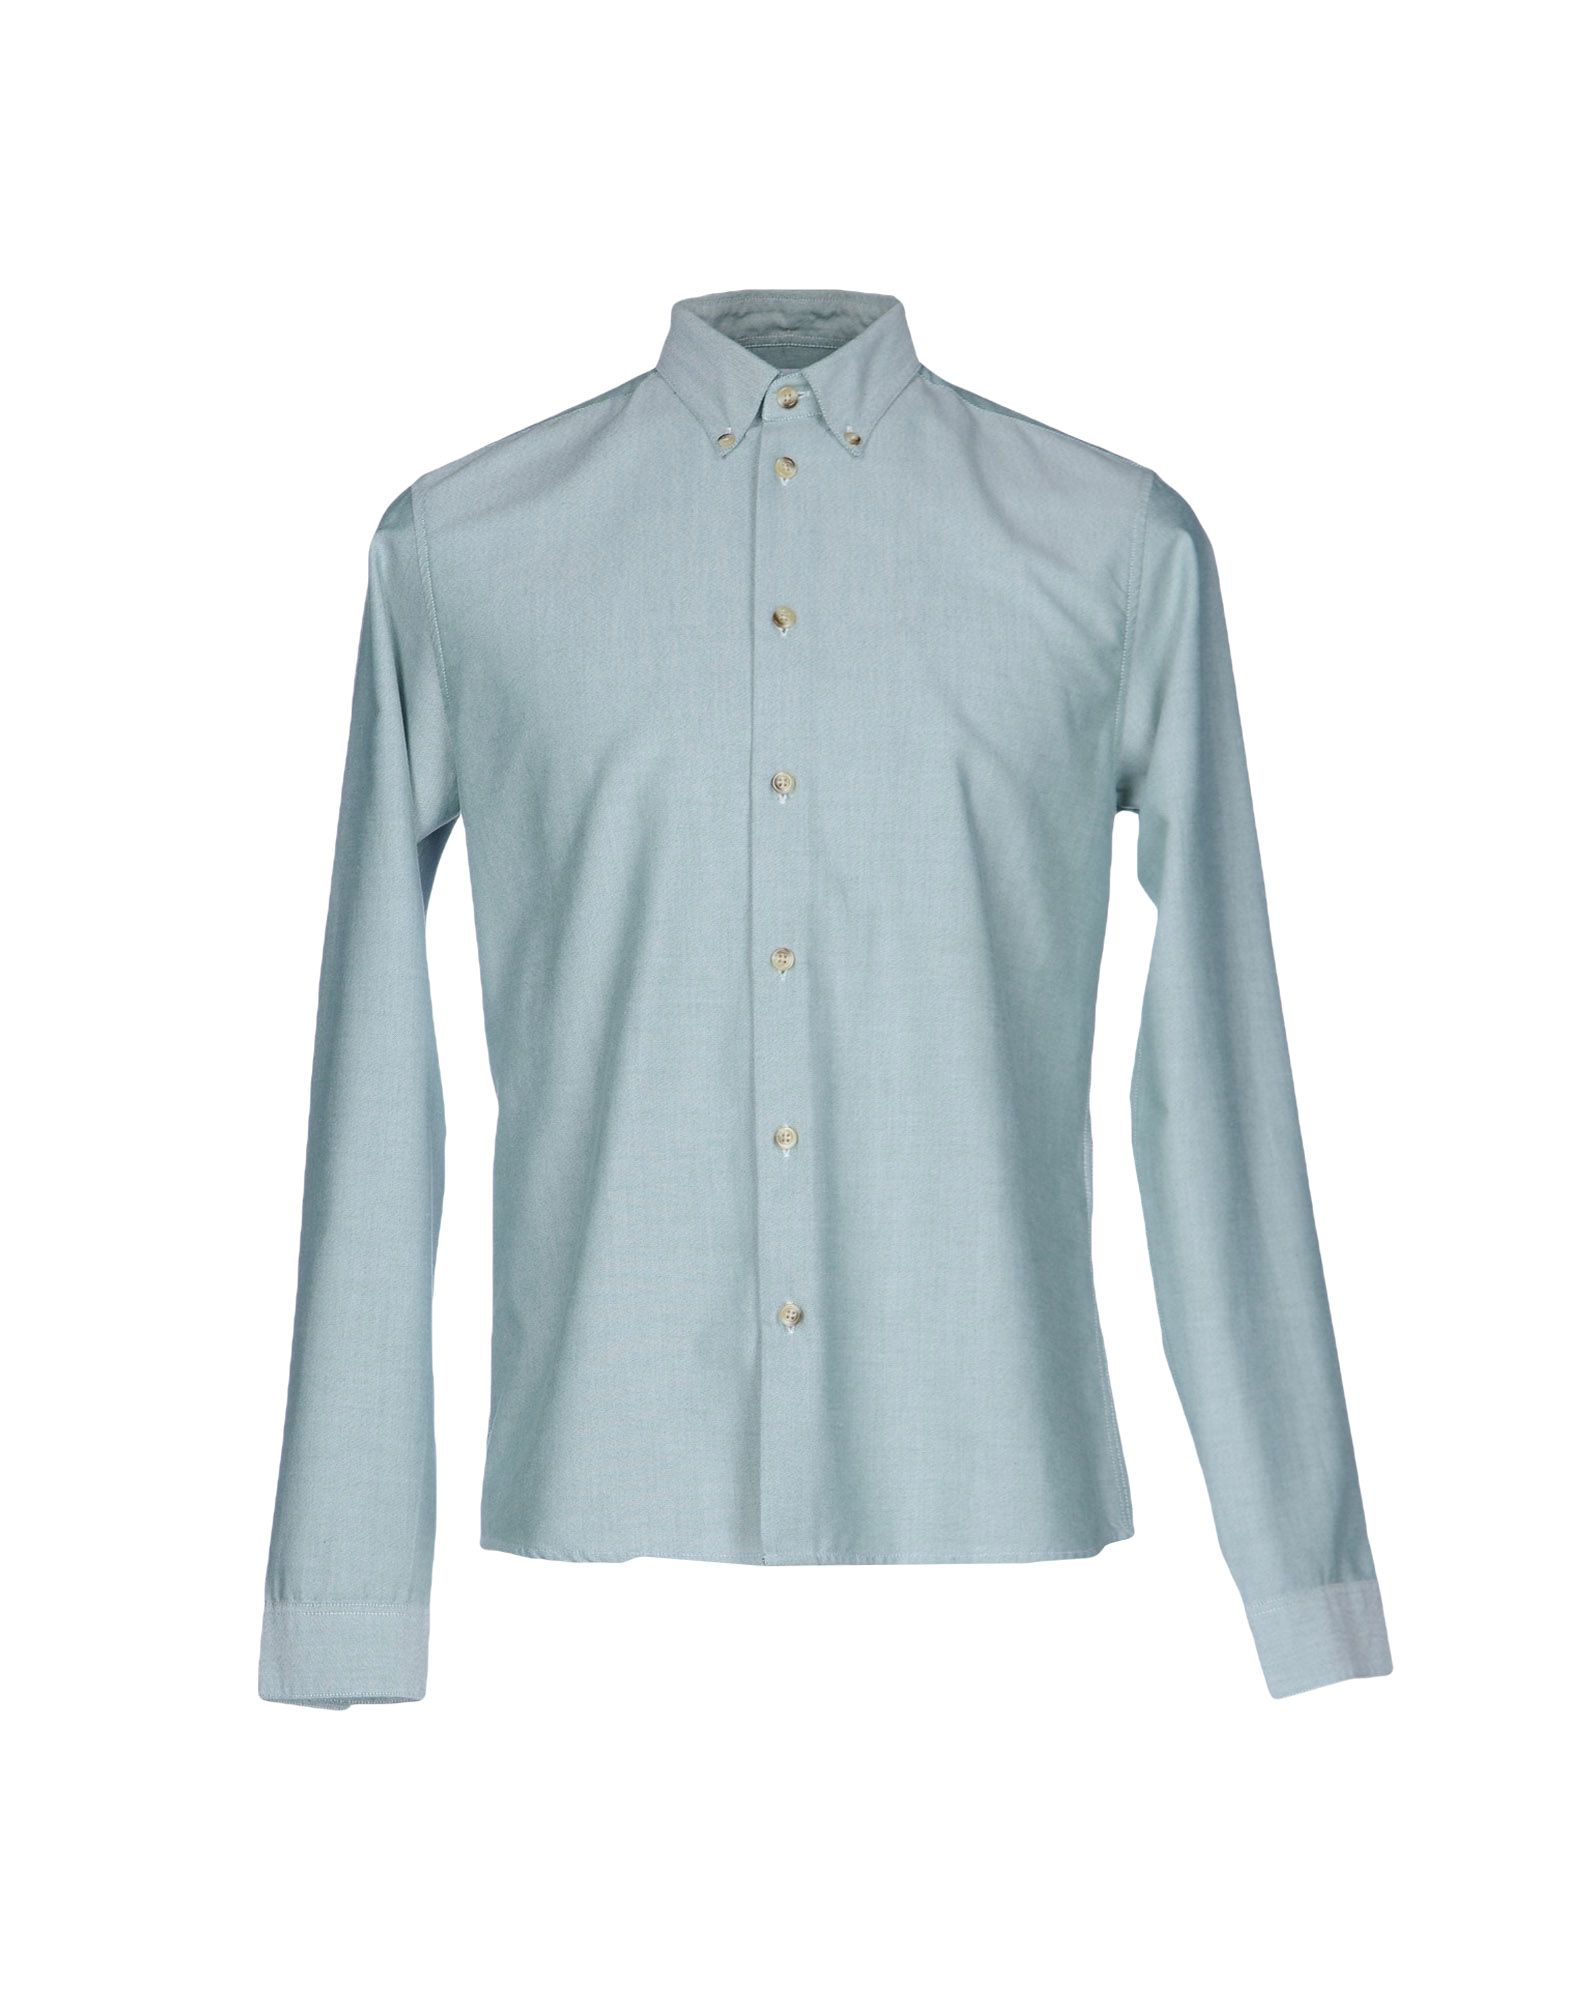 CUISSE DE GRENOUILLE Solid Color Shirt in Light Green